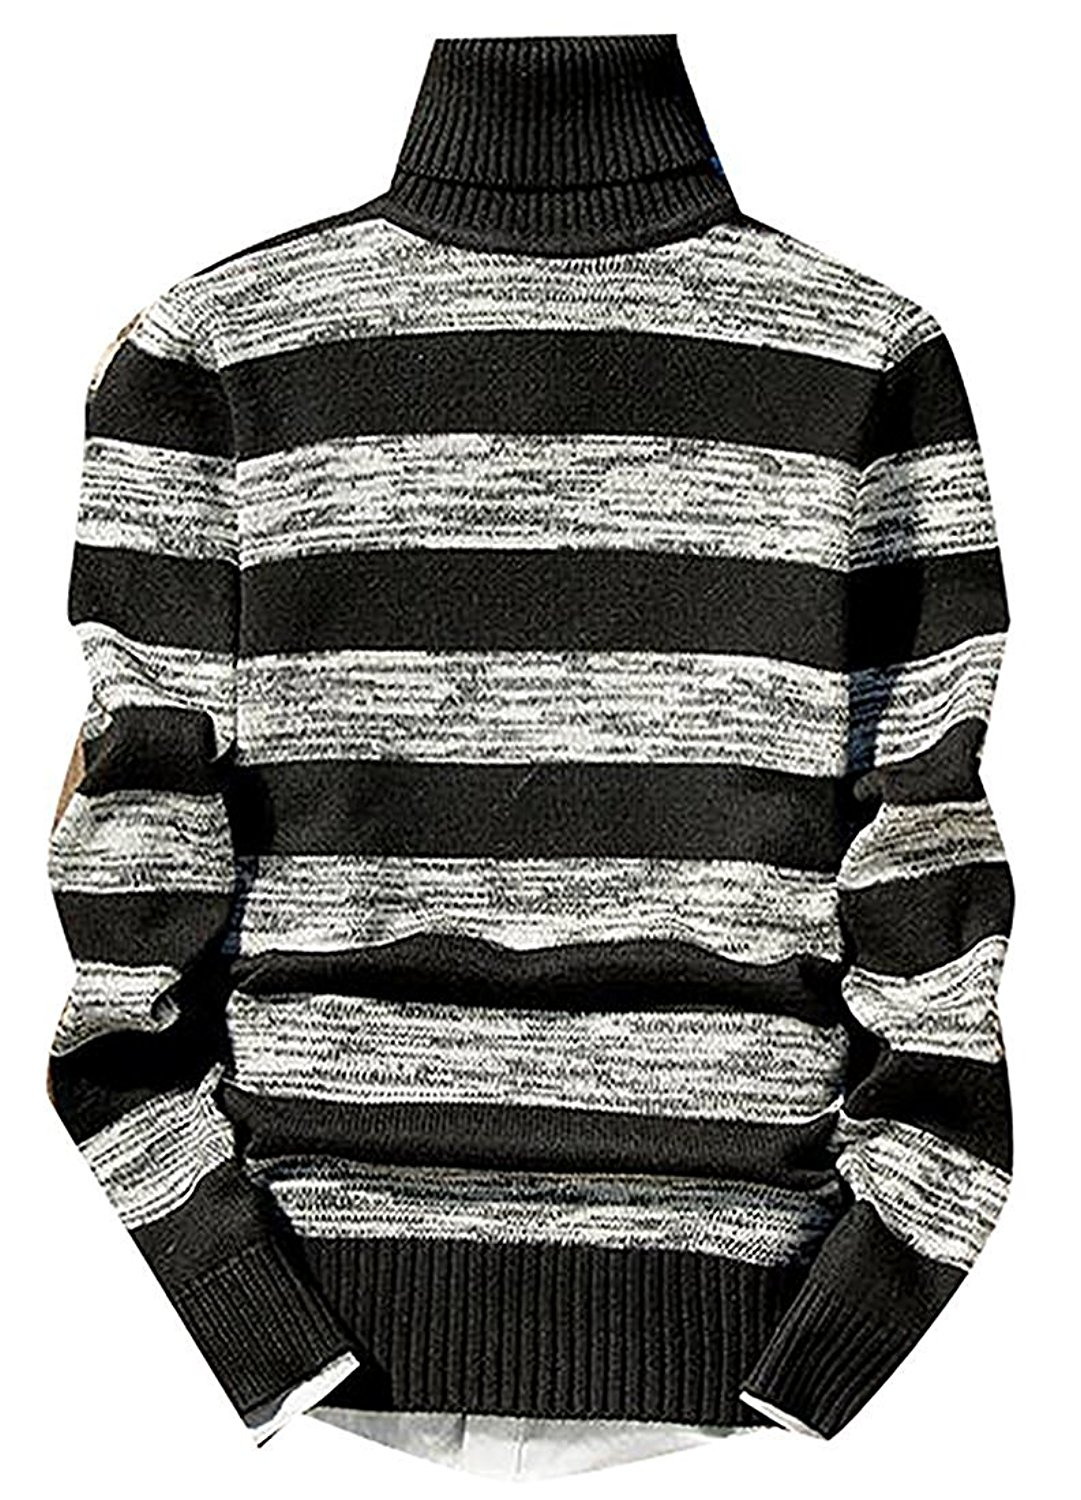 98c68ac7b4f Get Quotations · B dressy Fashion Mens Casual Stripe Knit High Neck Soft  Warm Pullover Sweaters